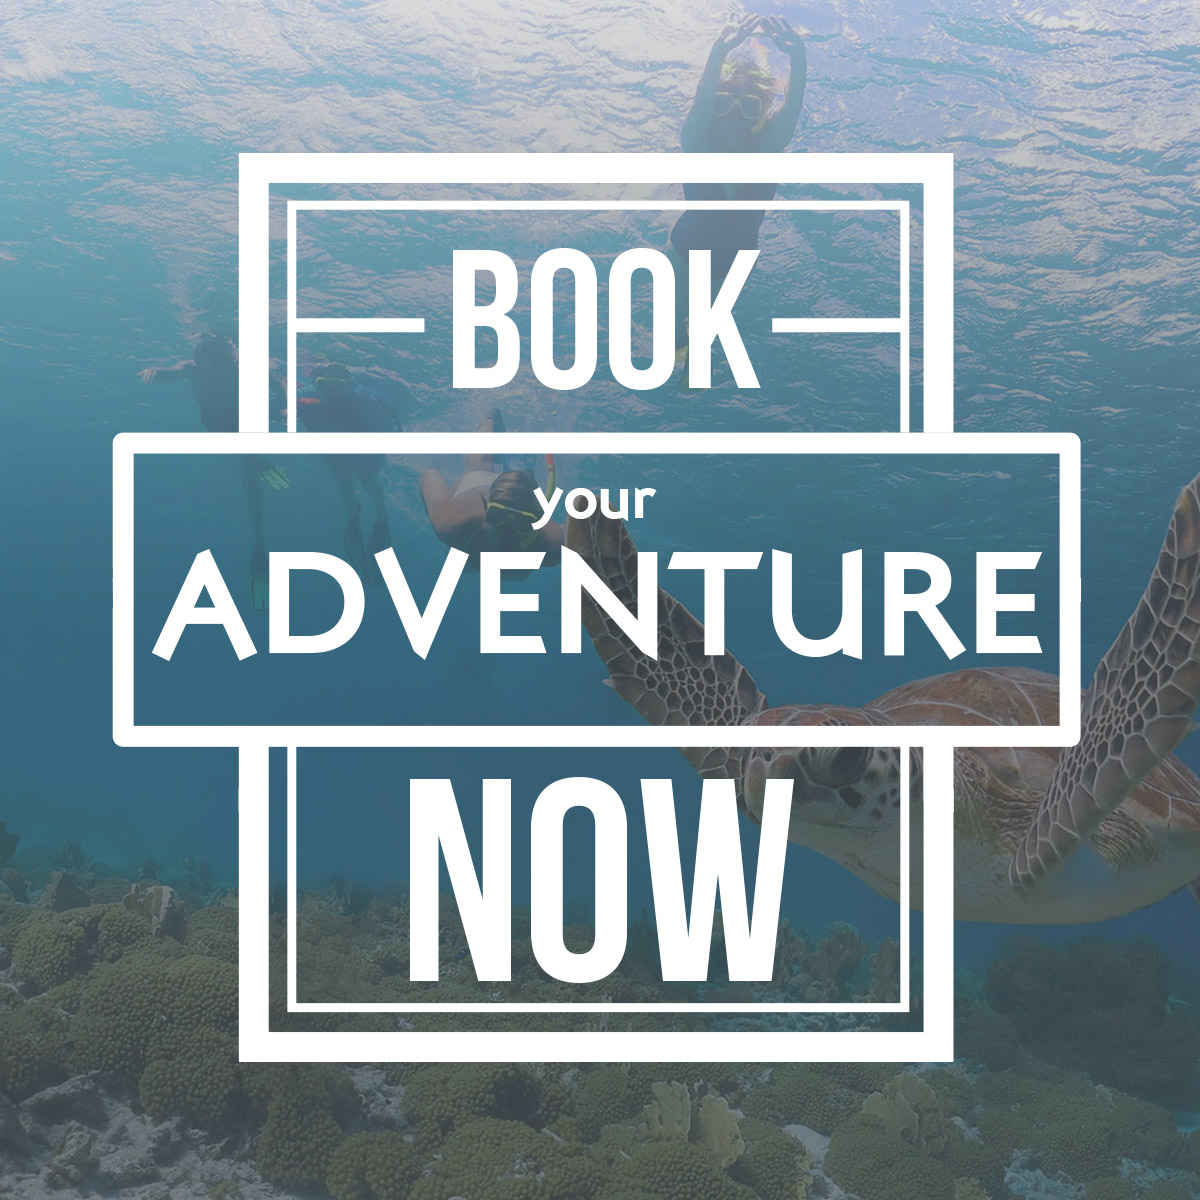 Book Your Adventure Now People.jpg